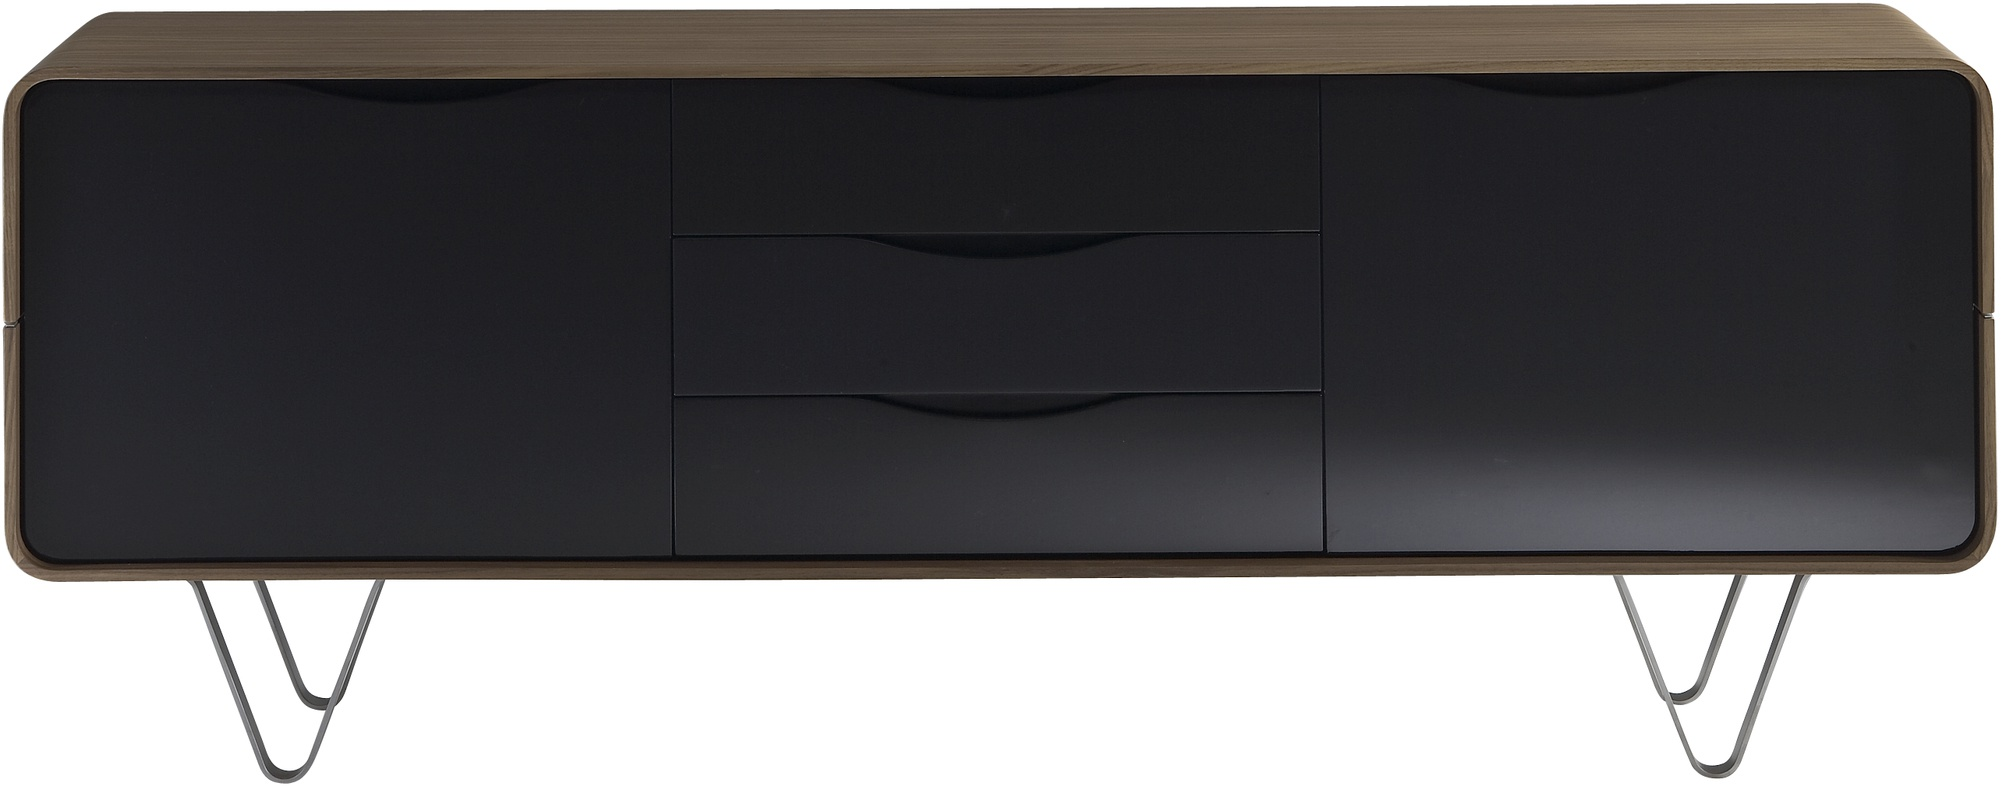 meuble tv ligne roset solutions pour la d coration. Black Bedroom Furniture Sets. Home Design Ideas